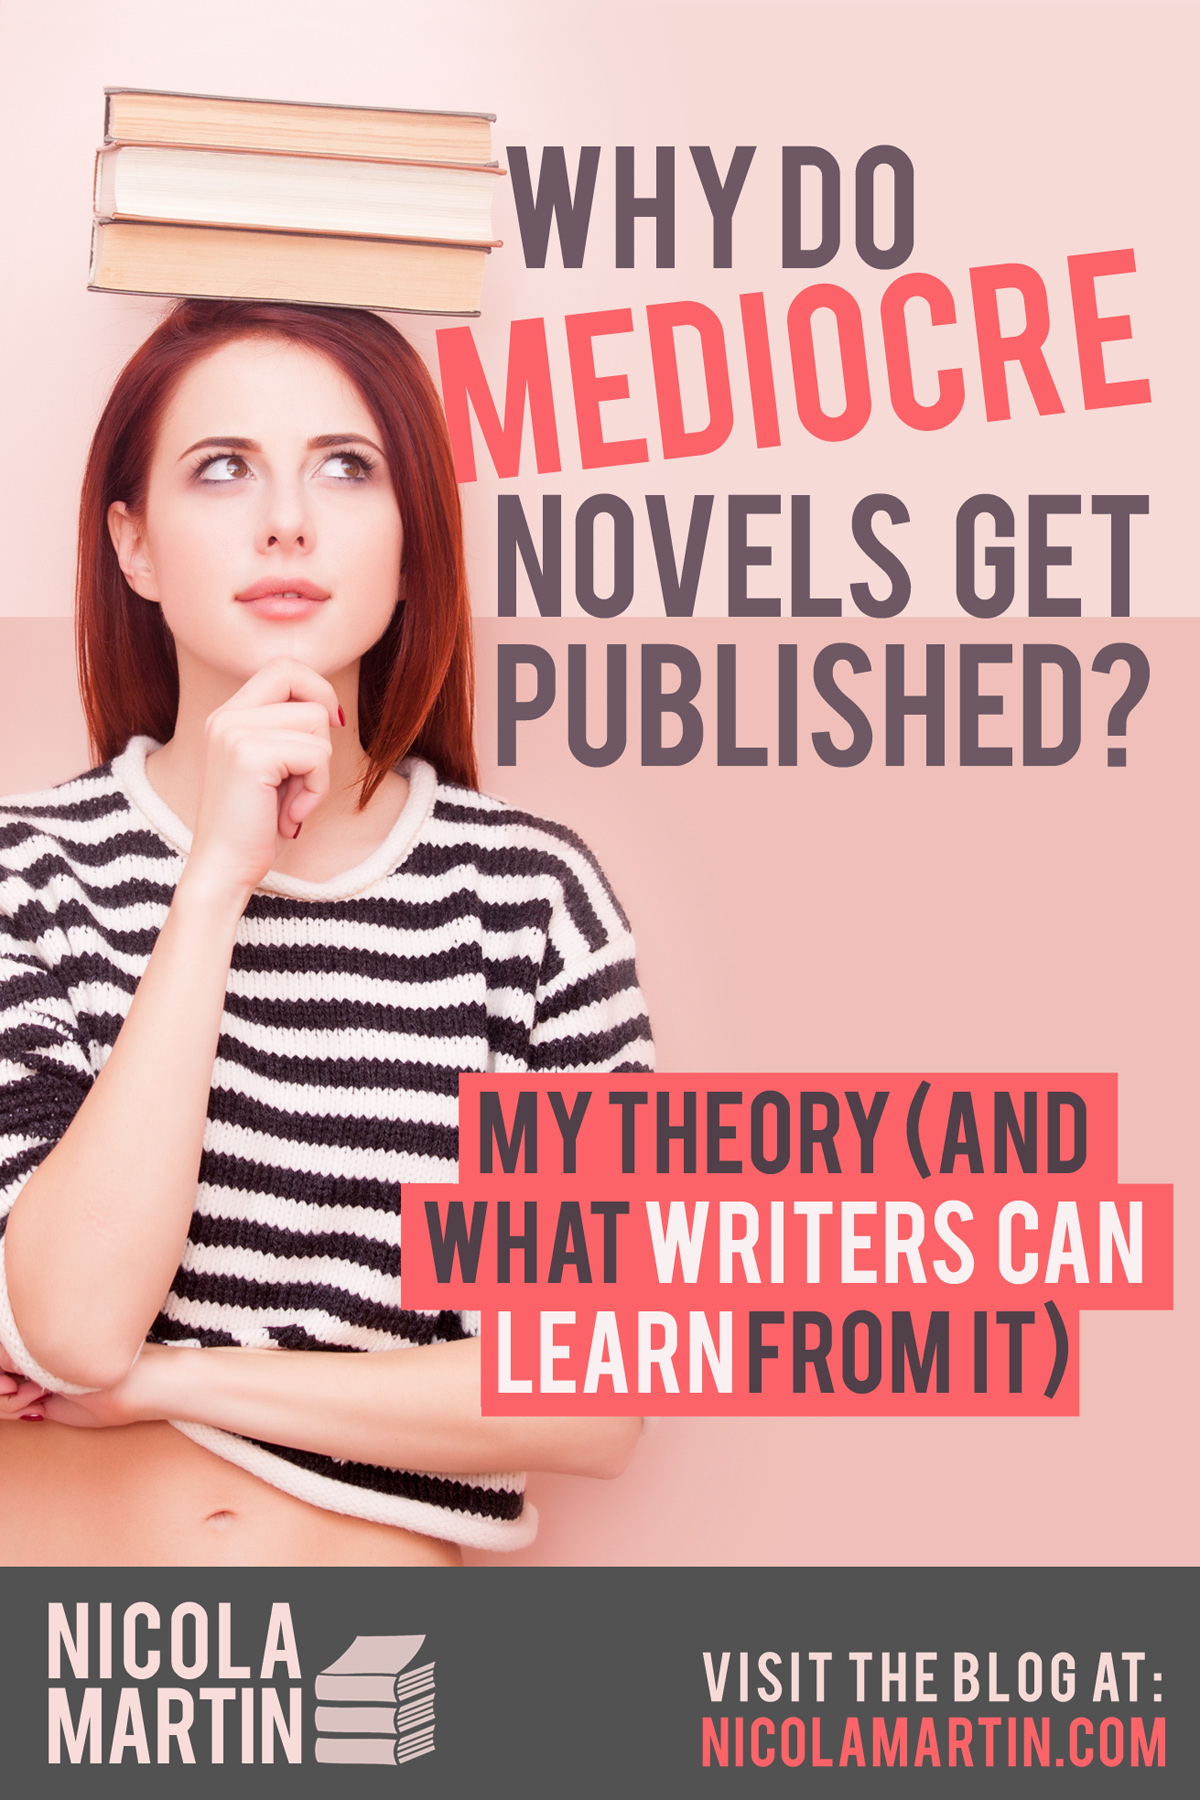 Why do mediocre novels get published?